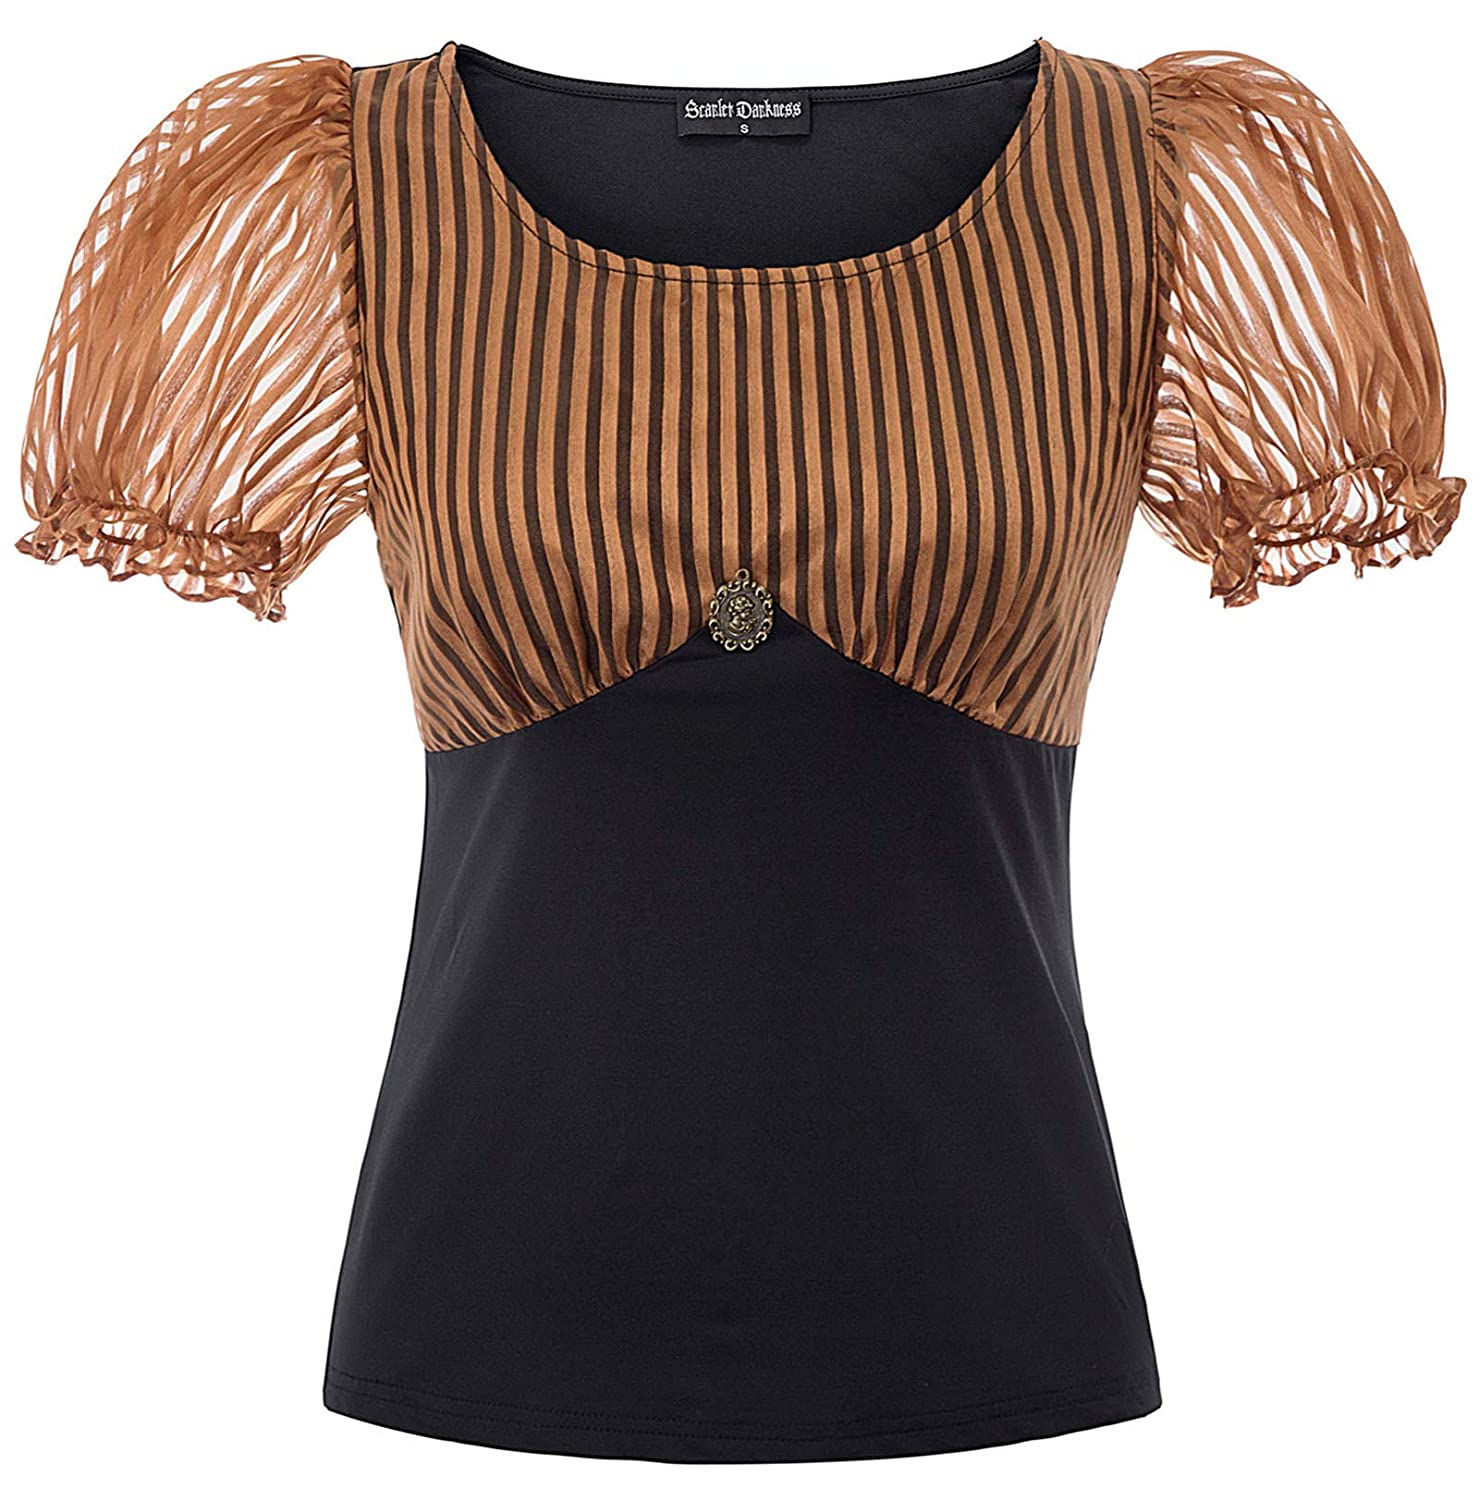 Steampunk Tops | Blouses, Shirts Lady Lace Up Gothic Blouse Renaissance Steampunk Short Sleeve Top $9.99 AT vintagedancer.com